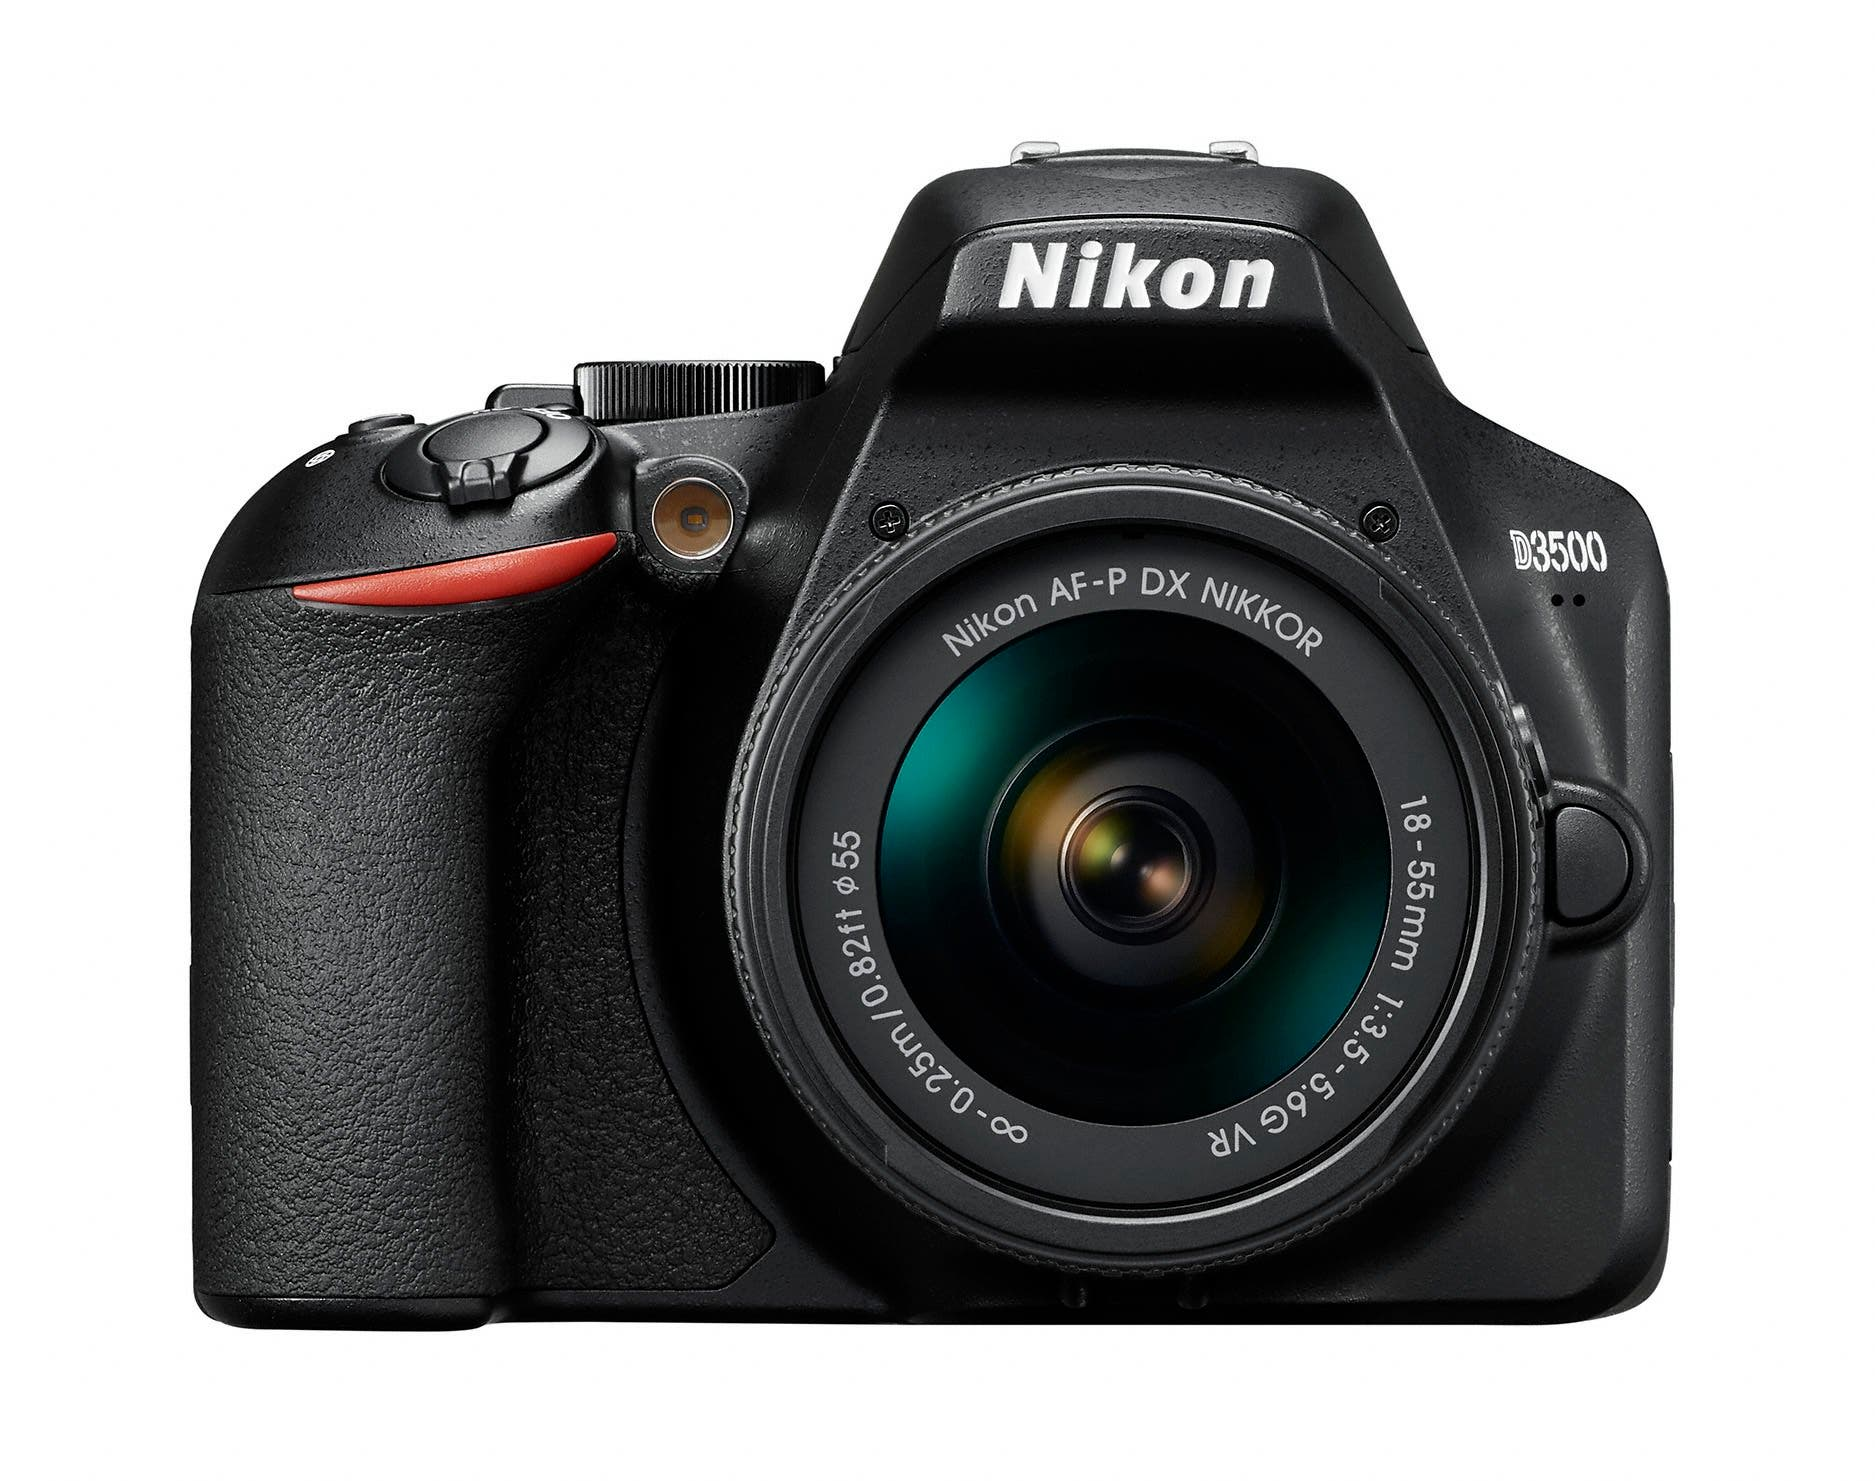 The New Nikon D3500 has a Battery Life Rating of 1,550 Shots